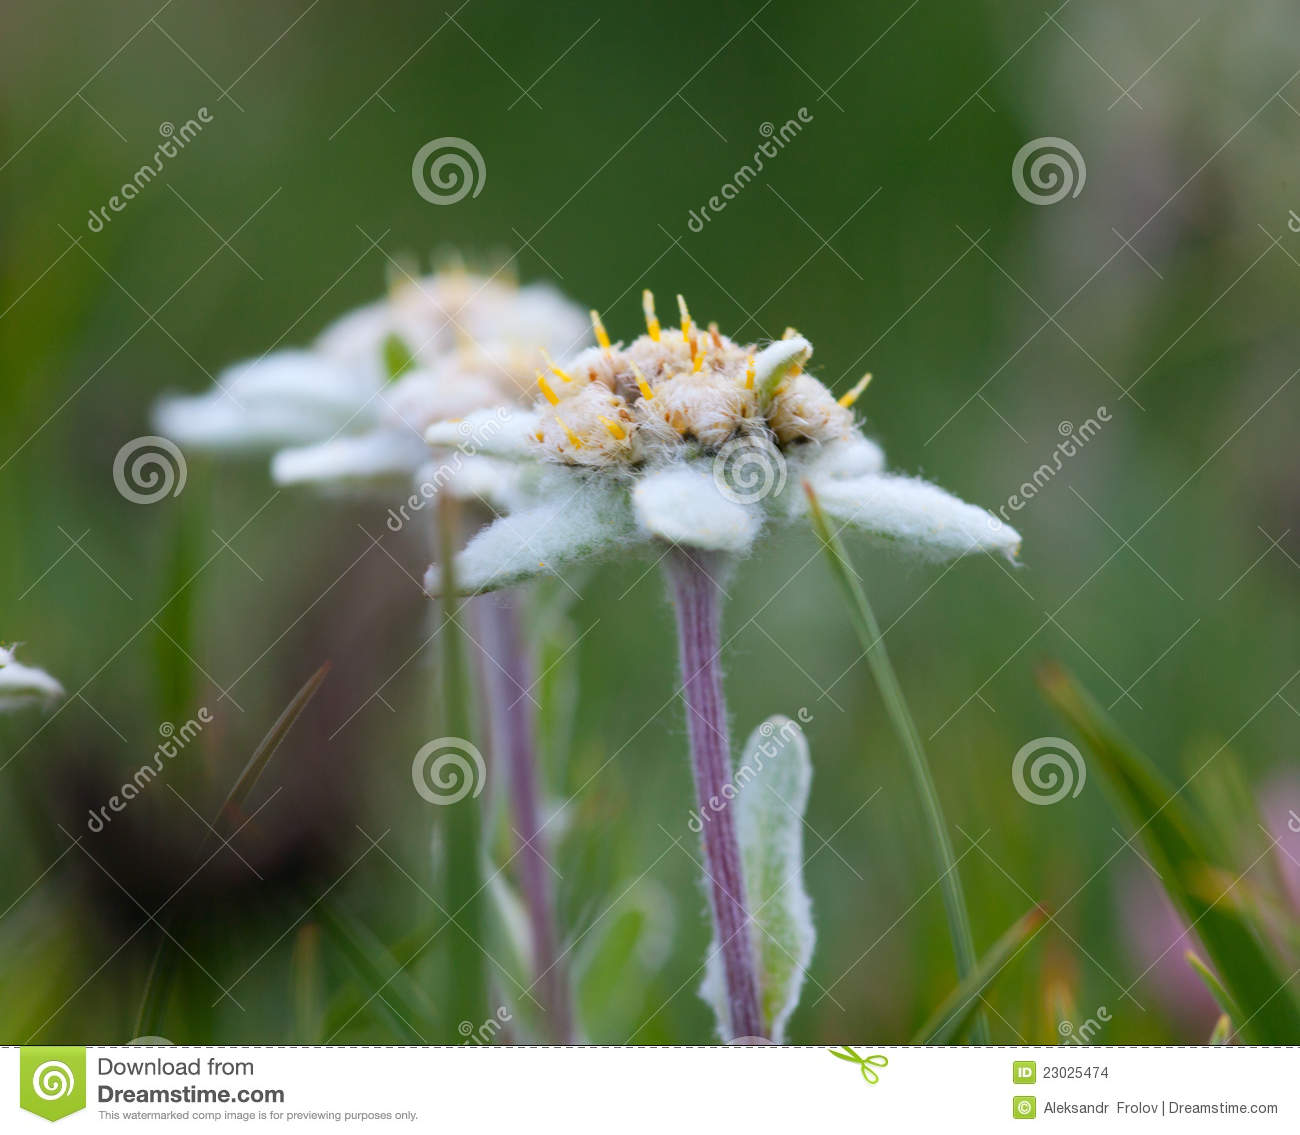 Edelweiss Flower Close-up Stock Images